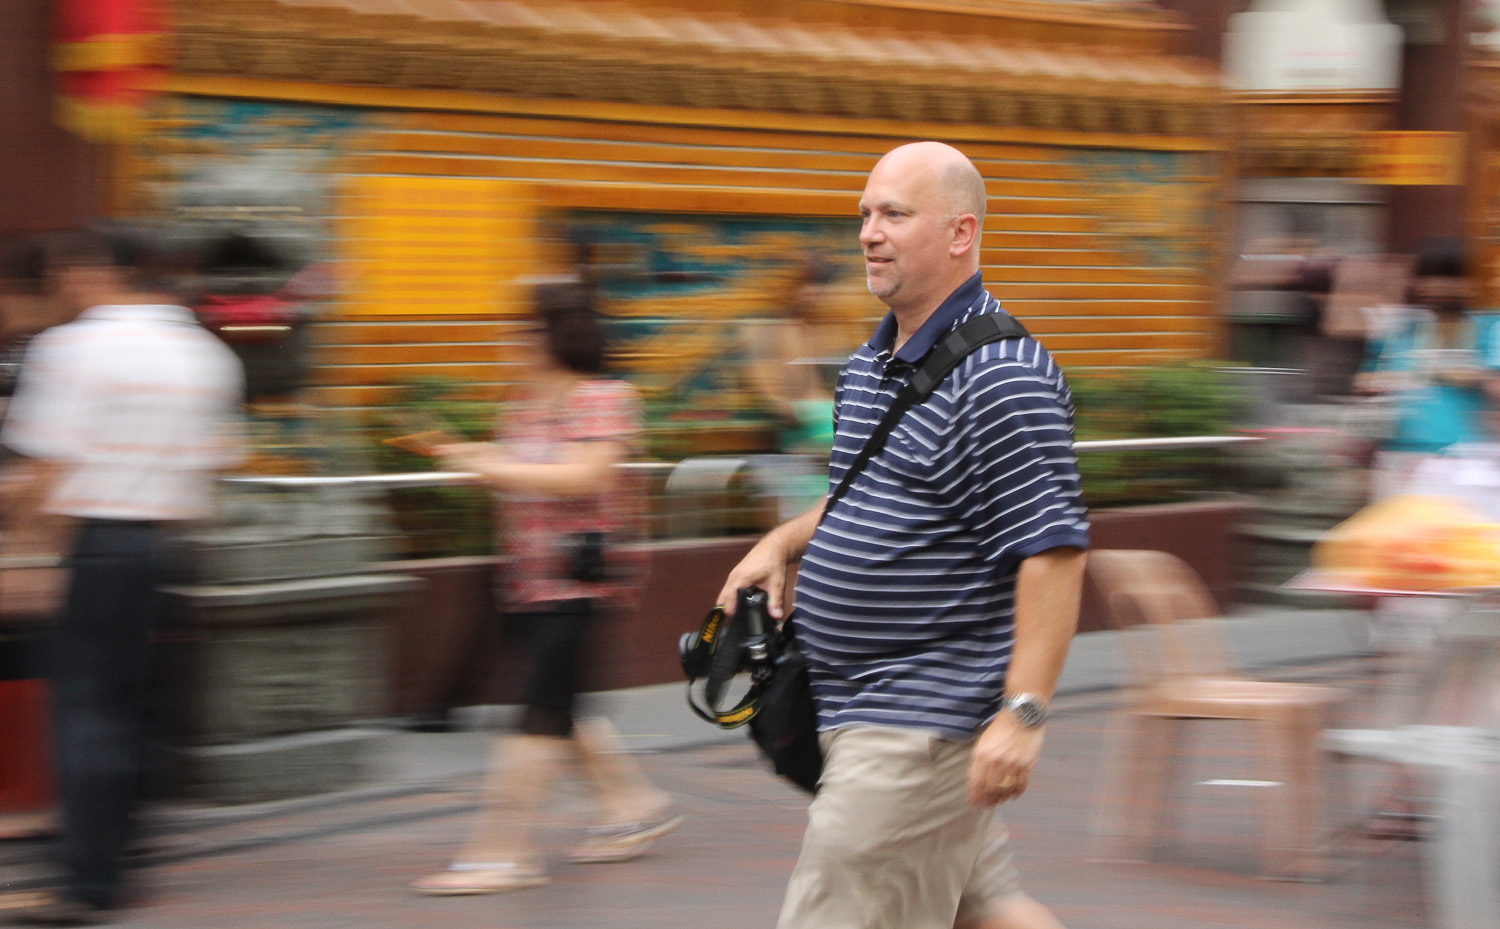 The Foodwalker on the move.